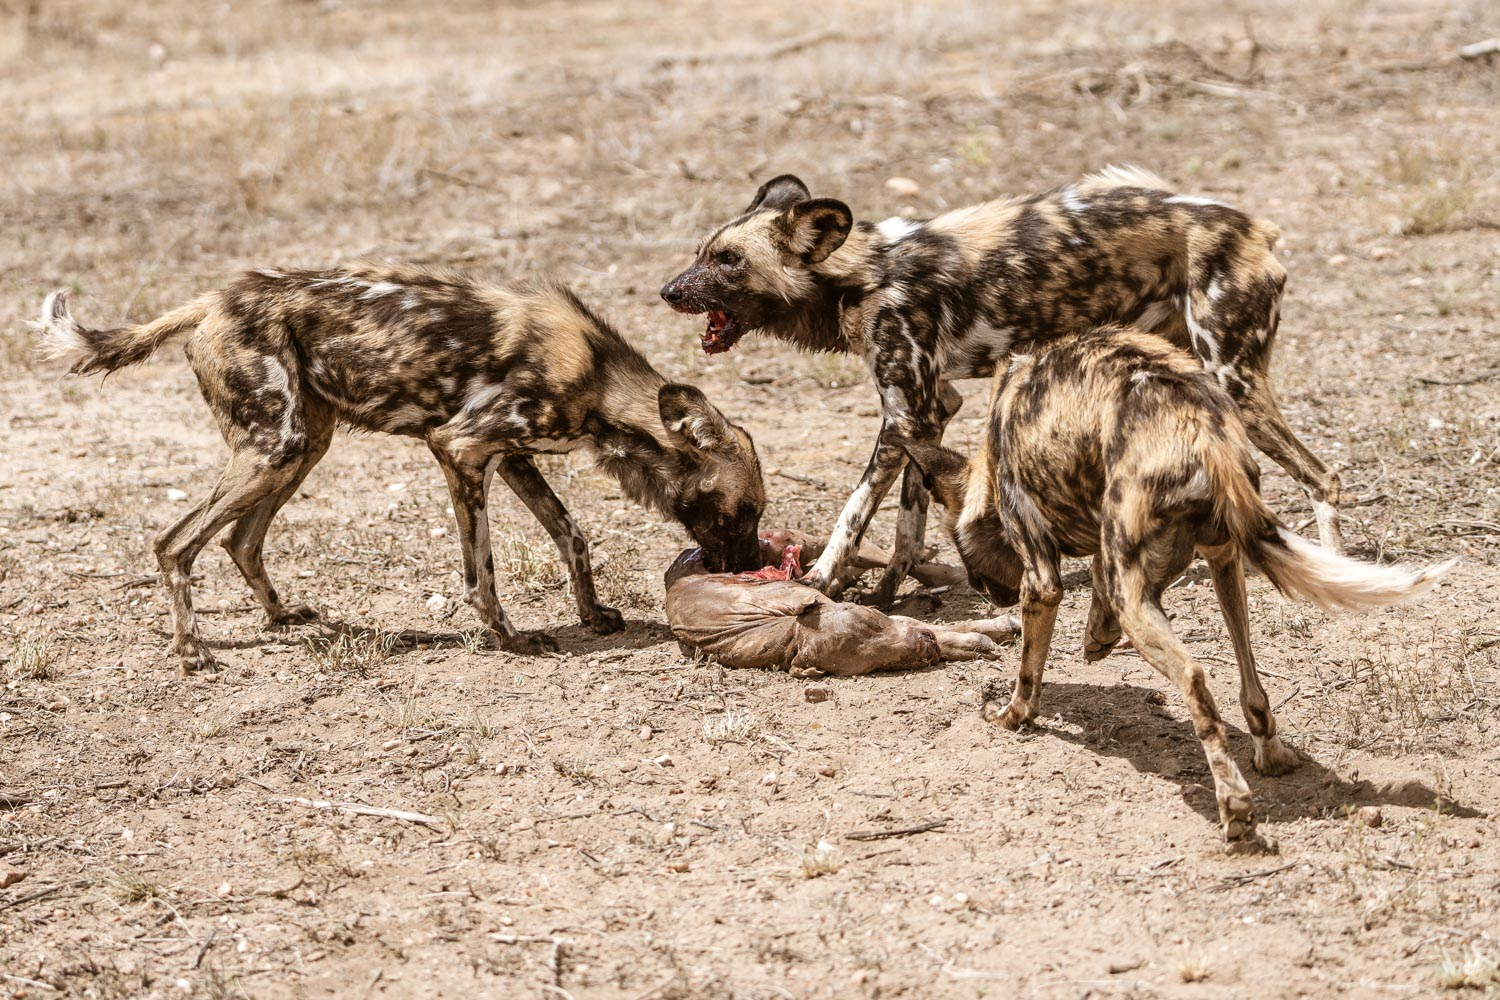 Wild dogs at Naankuse Wildlife Conservancy - naankuse.com - Photo: Roland Steffen